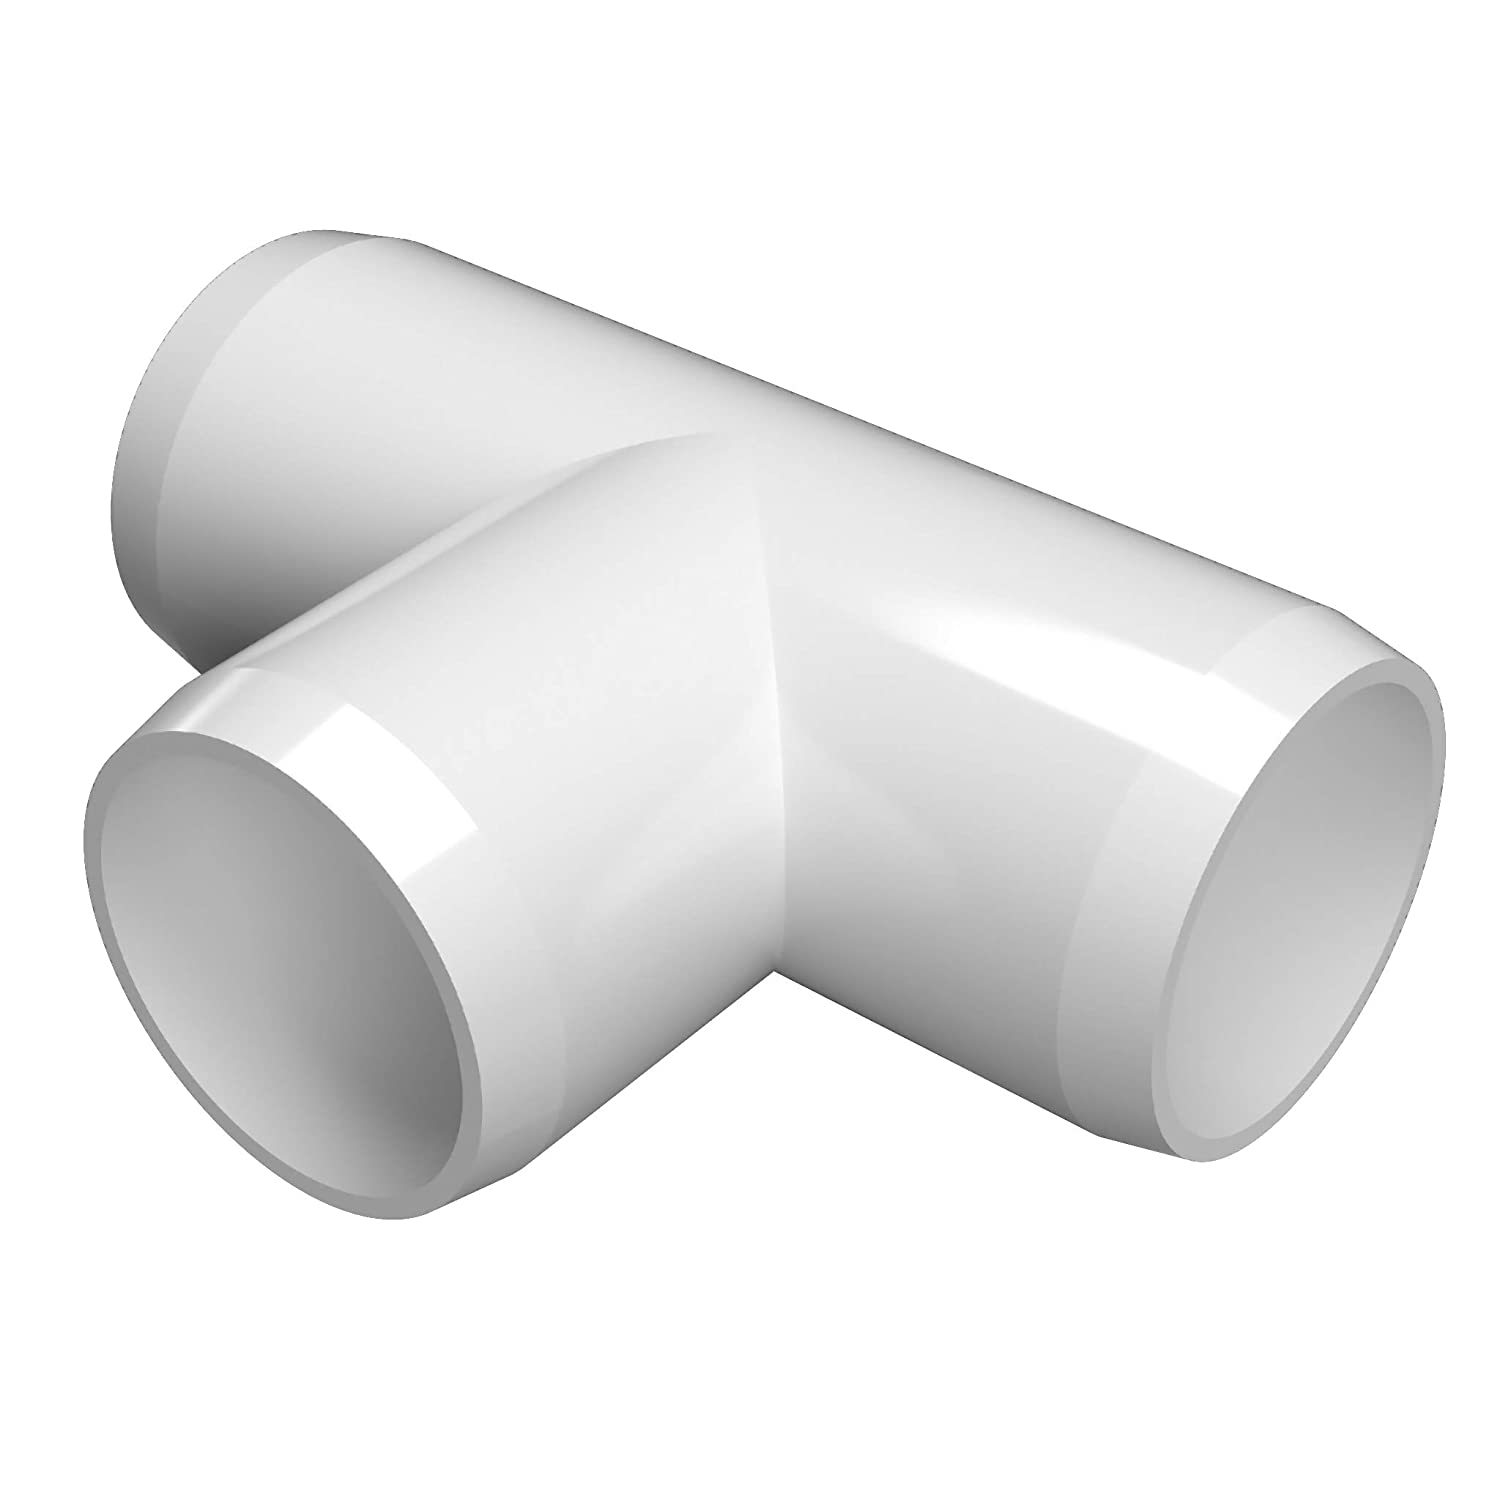 "FORMUFIT F012TEE-WH-10 Tee PVC Fitting, Furniture Grade, 1/2"" Size, White (Pack of 10)"